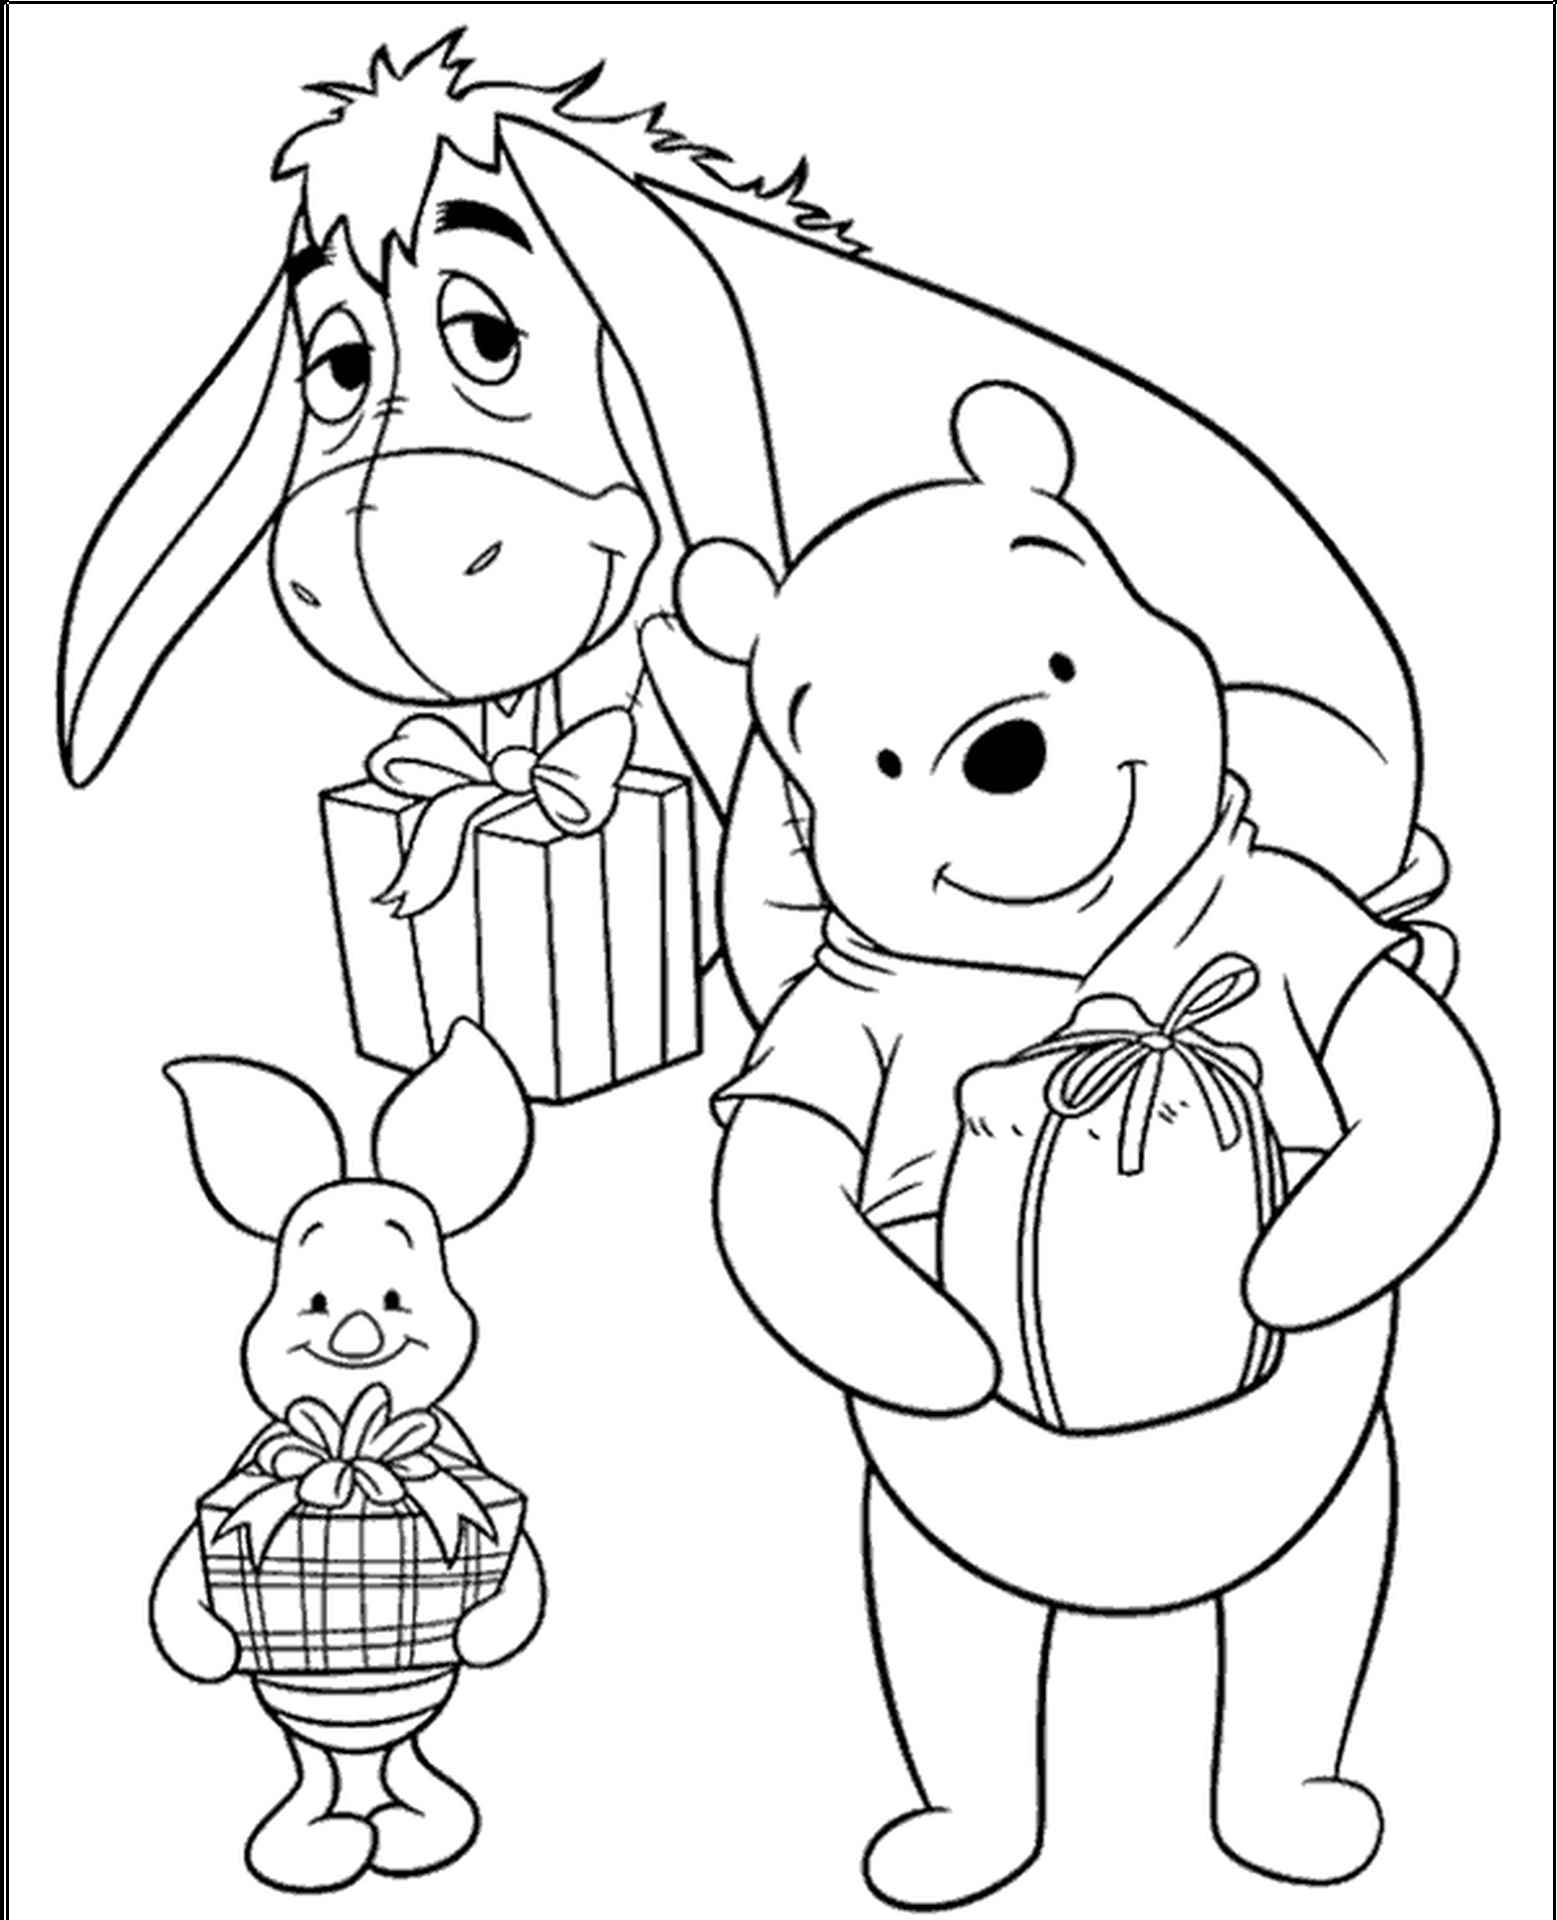 Winnie, Piglet And Eeyore Coloring Pages